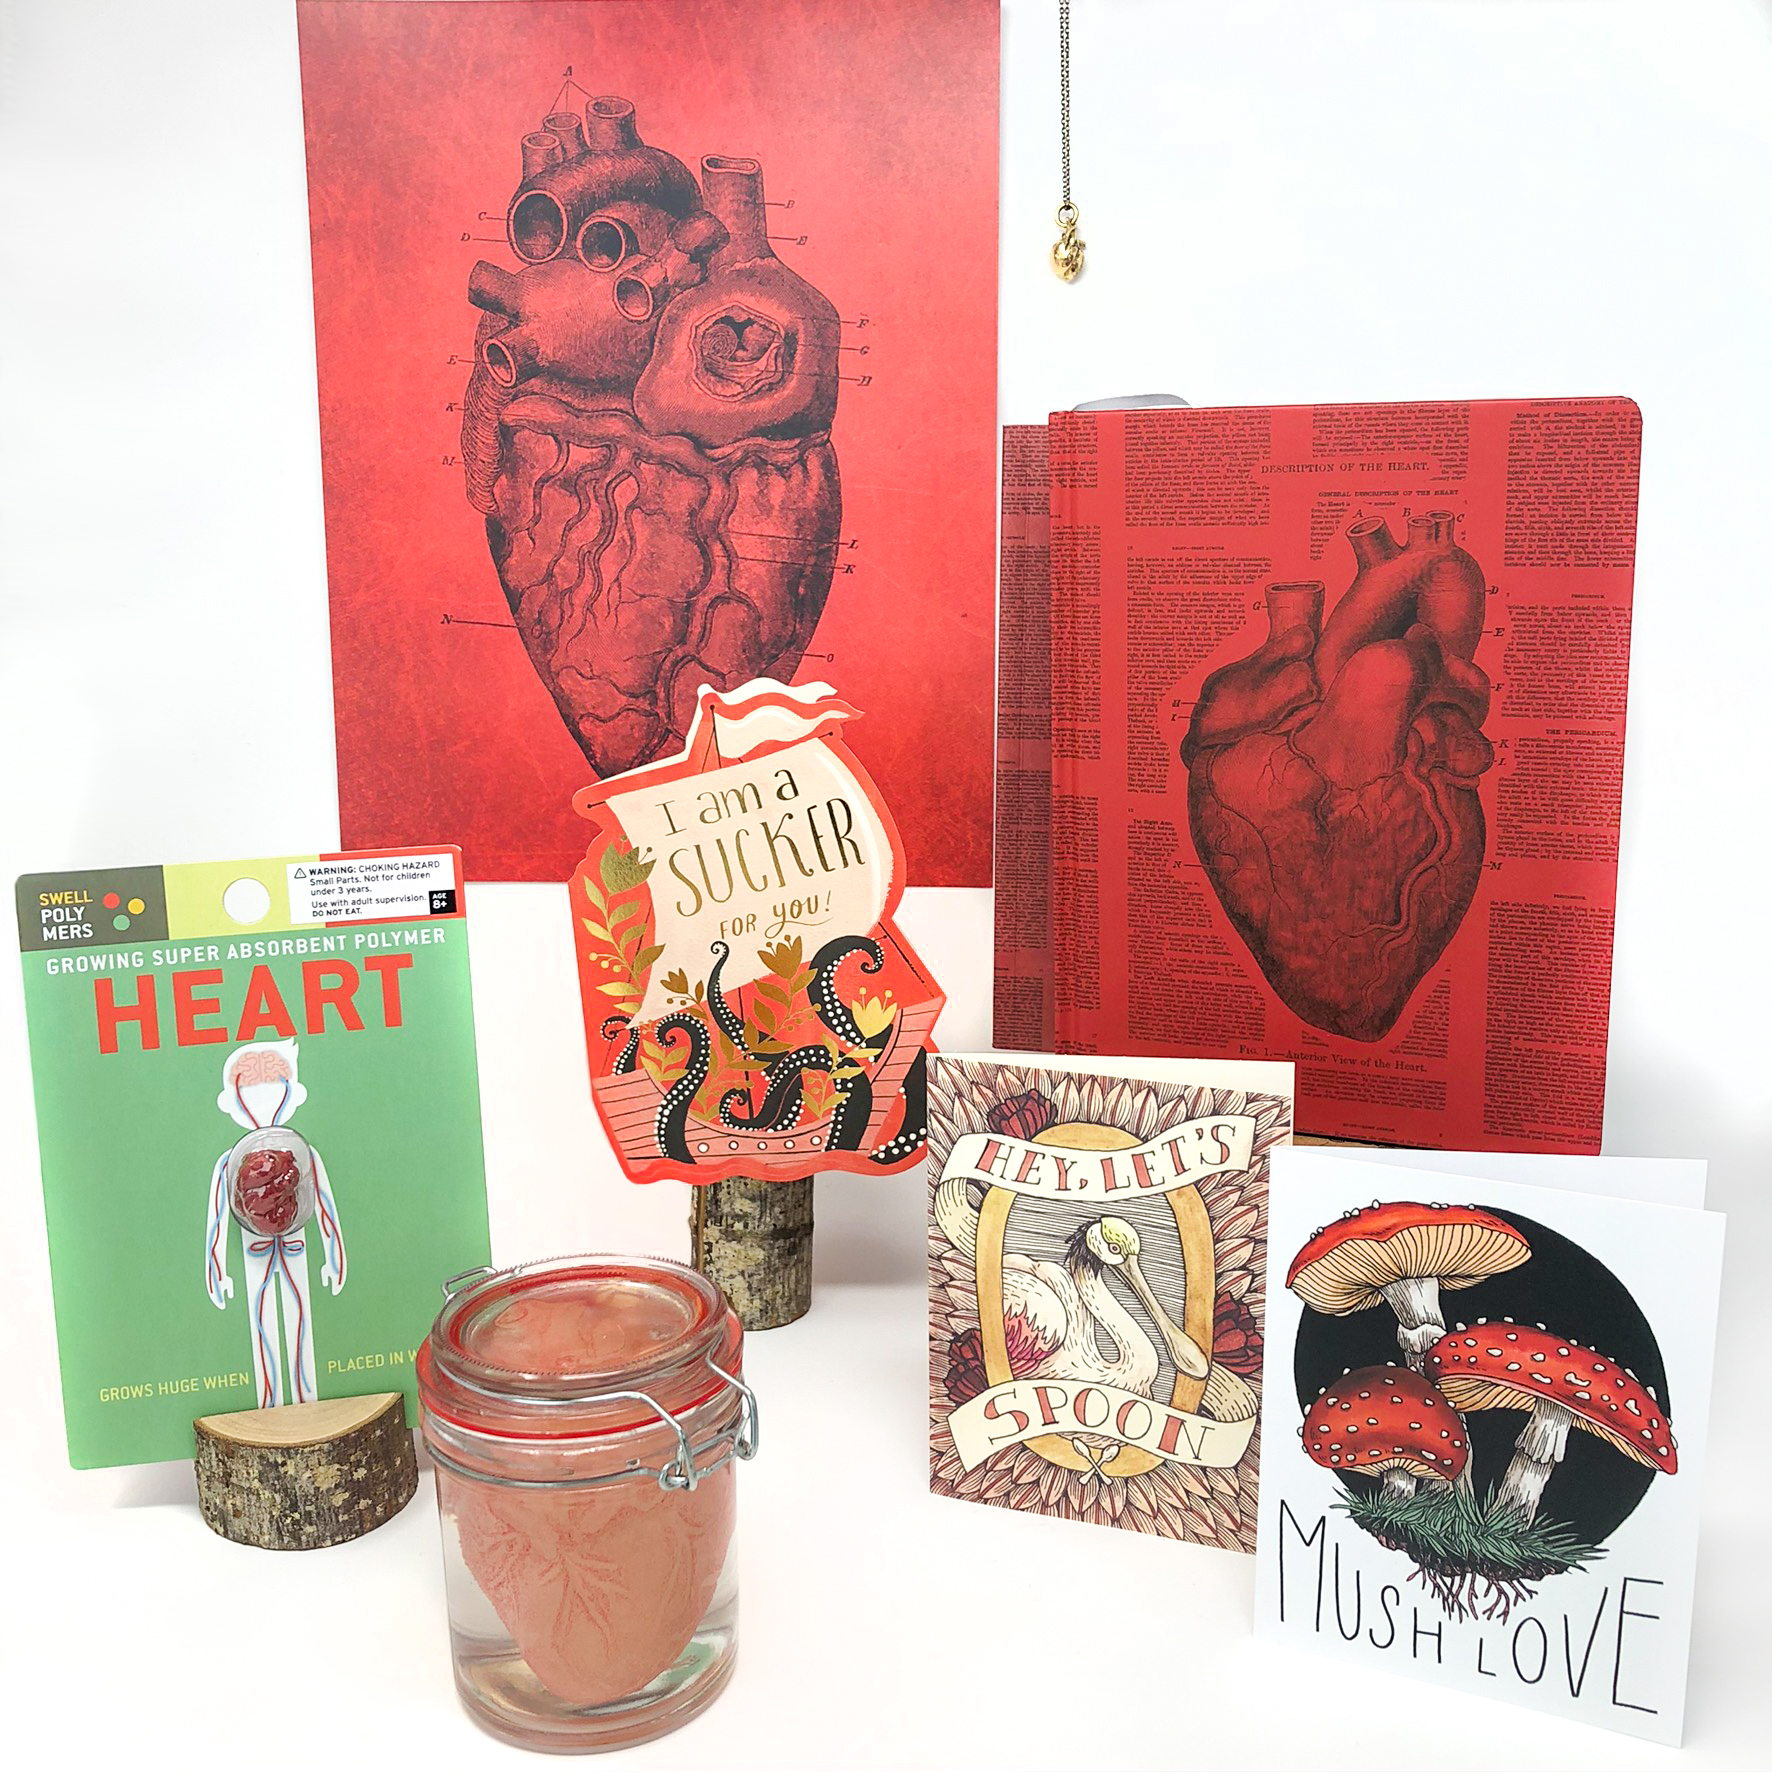 A grouping of gifts related to the anatomical drawing of a human heart